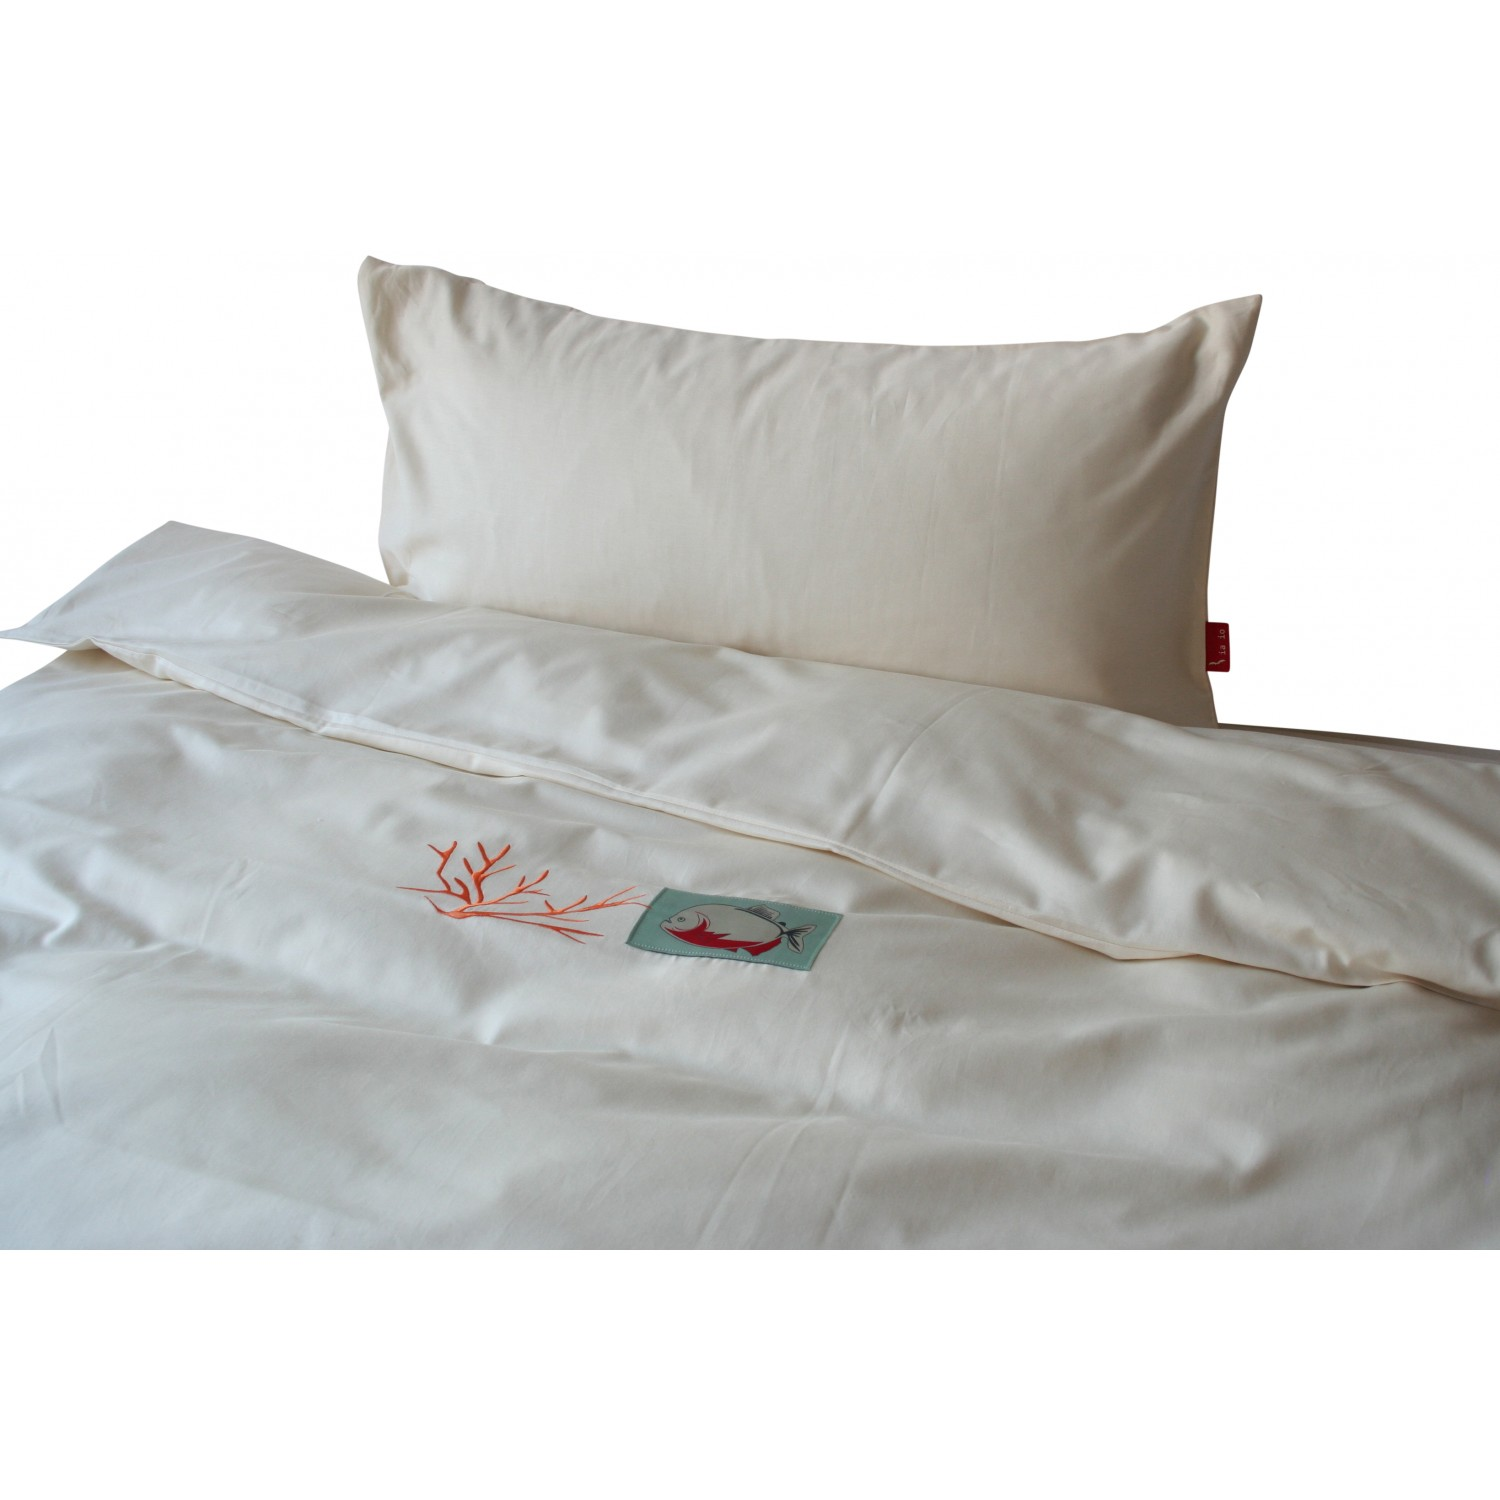 Organic Cotton Bedding with Piranha and Coral | iaio